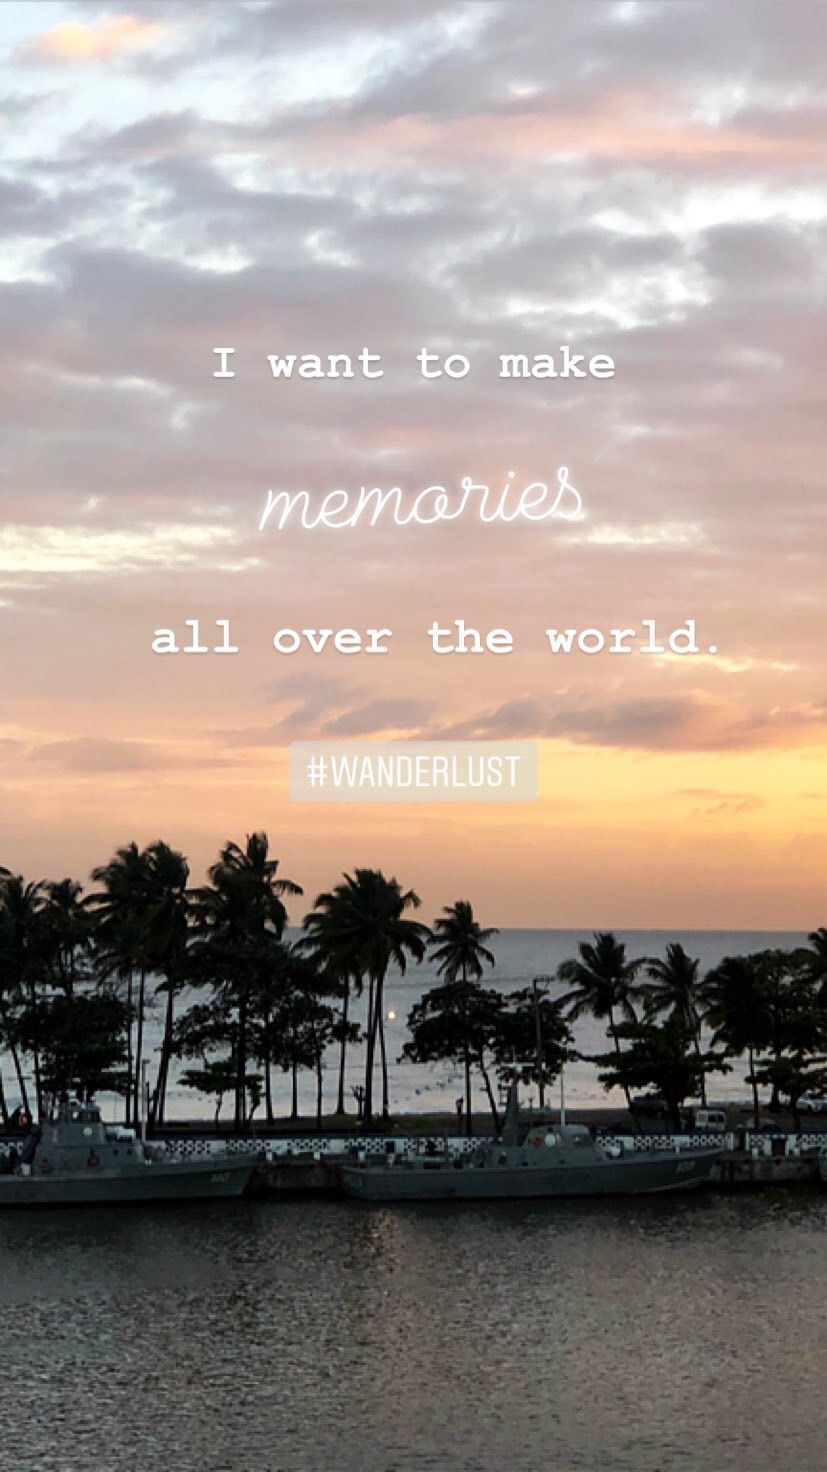 I Want To Make Memories All Over The World Santo Domingo Dominikanische Republik Wanderlust Sunset Zitat Travel Travelquot Santo Domingo Vacay Domingo